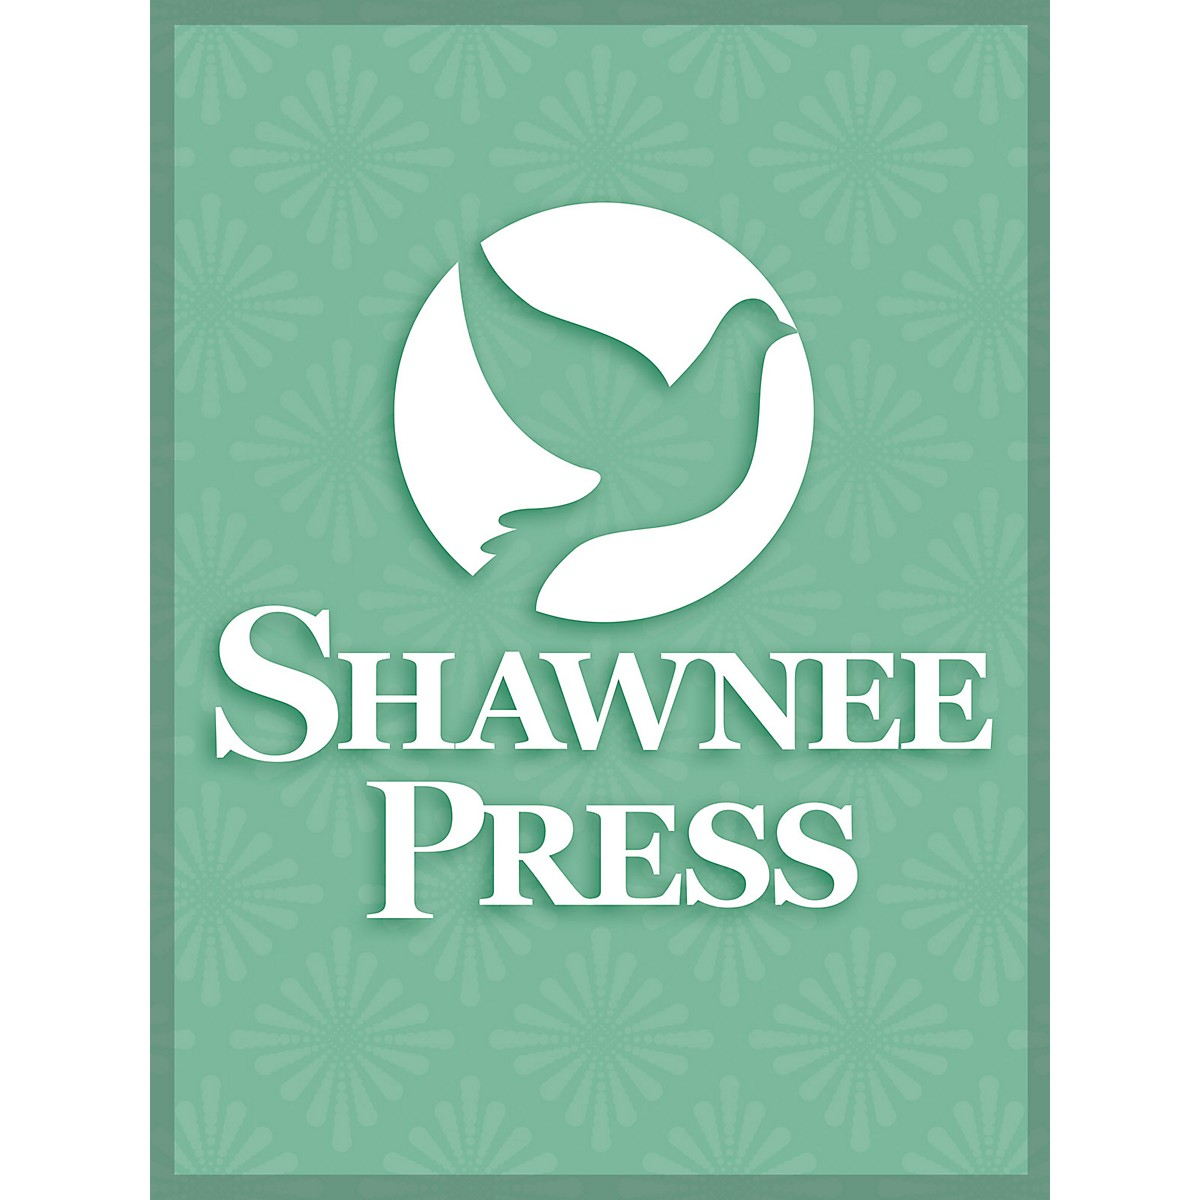 Shawnee Press Twenty One Christmas Carols for Sax Trio Shawnee Press Series Arranged by James